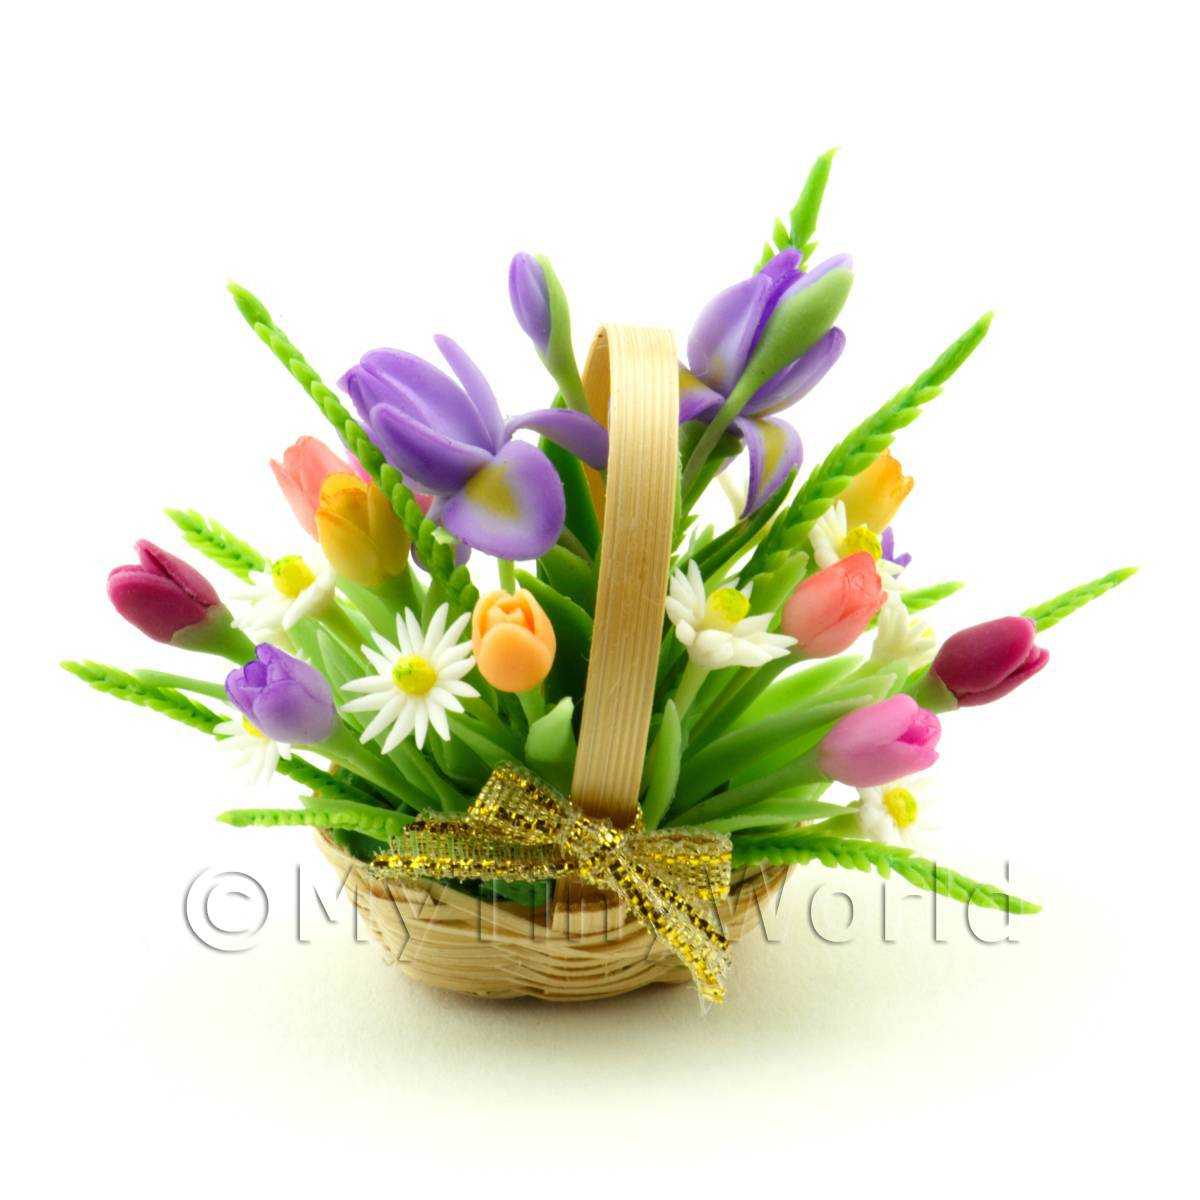 Dolls House Miniature Mixed Irises  Tulips Bouquet